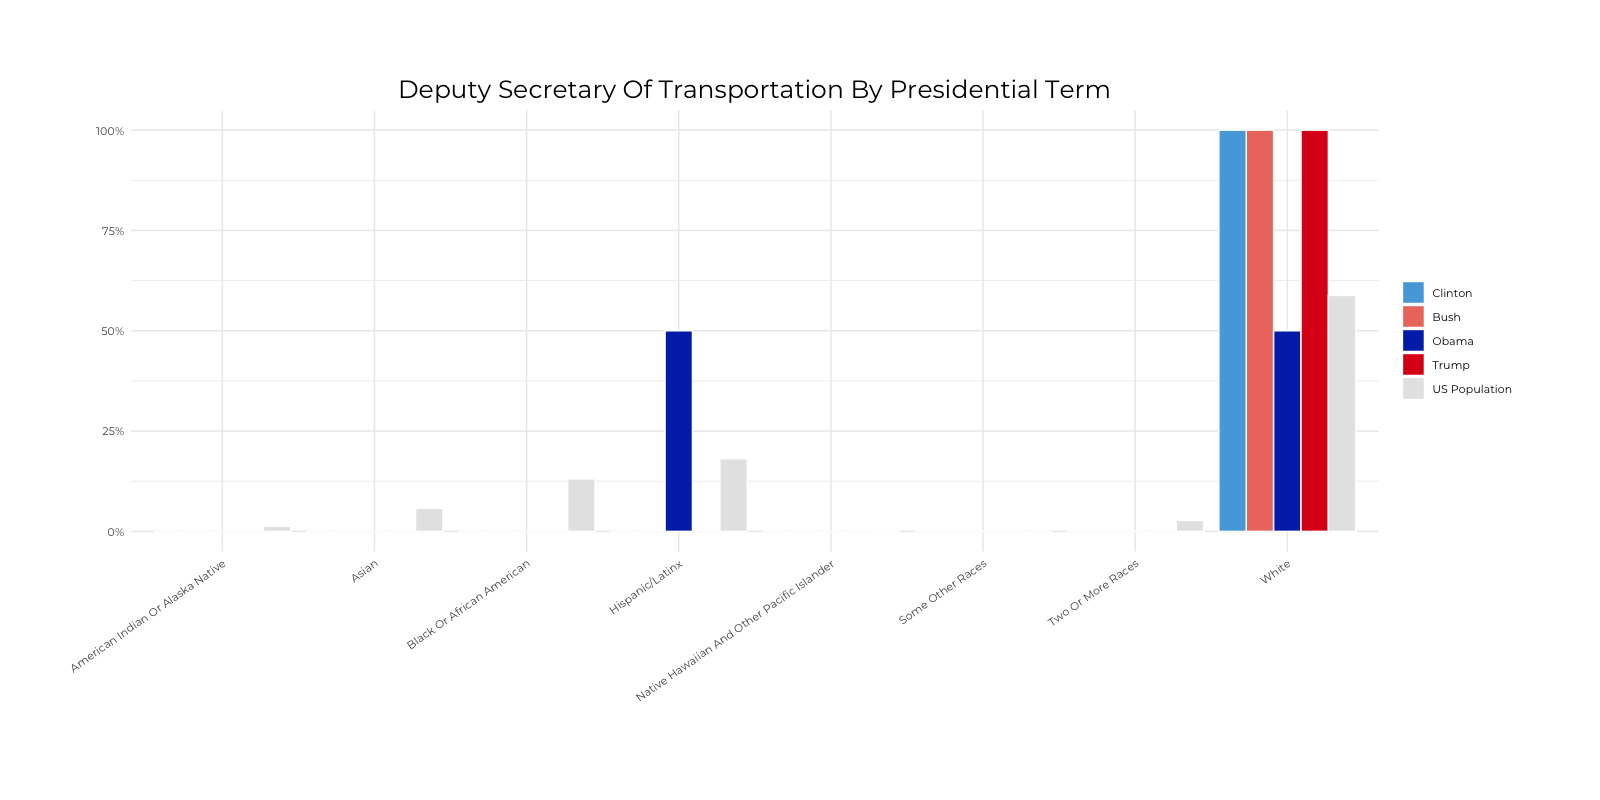 Graph about Racial Composition Comparison of Deputy Secretary of Transportation by Presidential Terms. More detailed text description below.